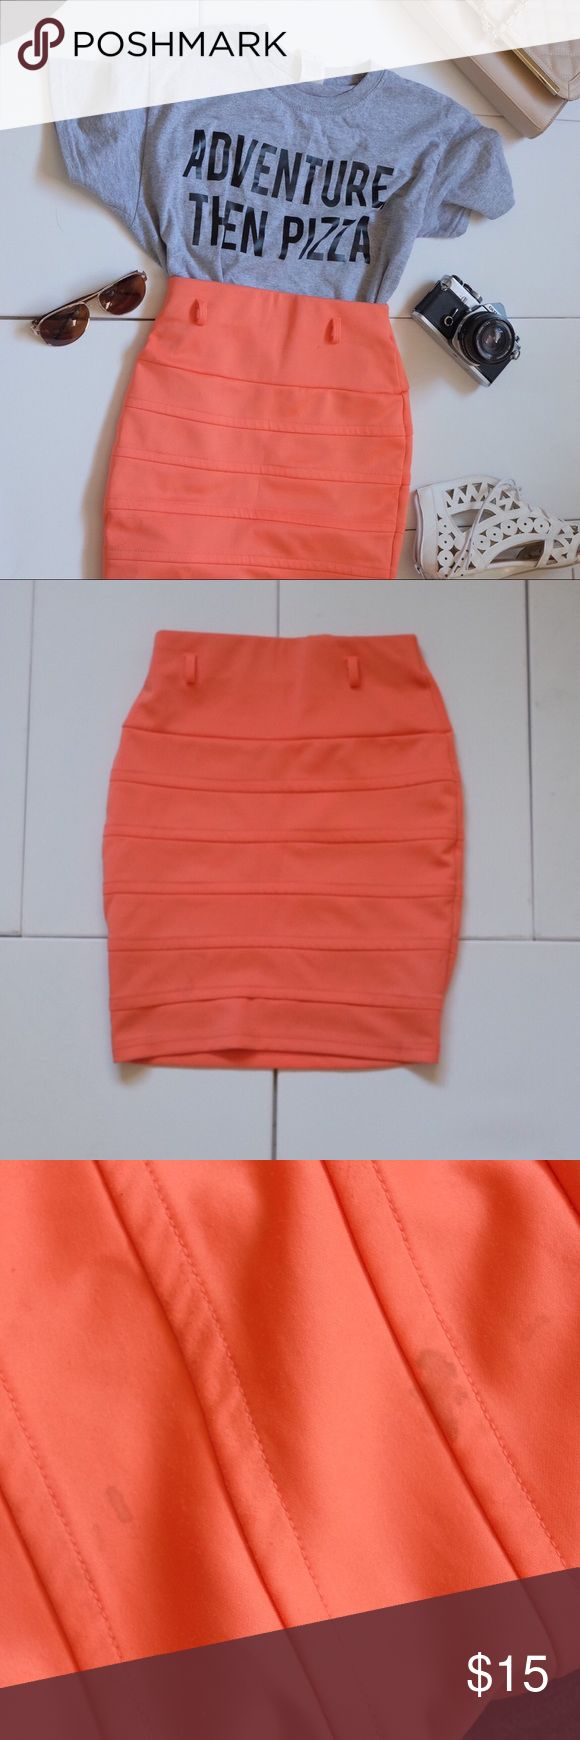 Salmon / coral bodycon bandeau skirt w/belt loops Salmon / coral bodycon bandeau skirt w/belt loops. A few stains (front & back) but I'll try to get them out. If they come out pics & description will be updated to reflect the changes. Skirt is a coral salmon pink orange color. Very pretty and true to color in pics - different phone screens may effect color. The belt loops are a plus! It adds so much style to the skirt on top of the bold color! Skirts Pencil